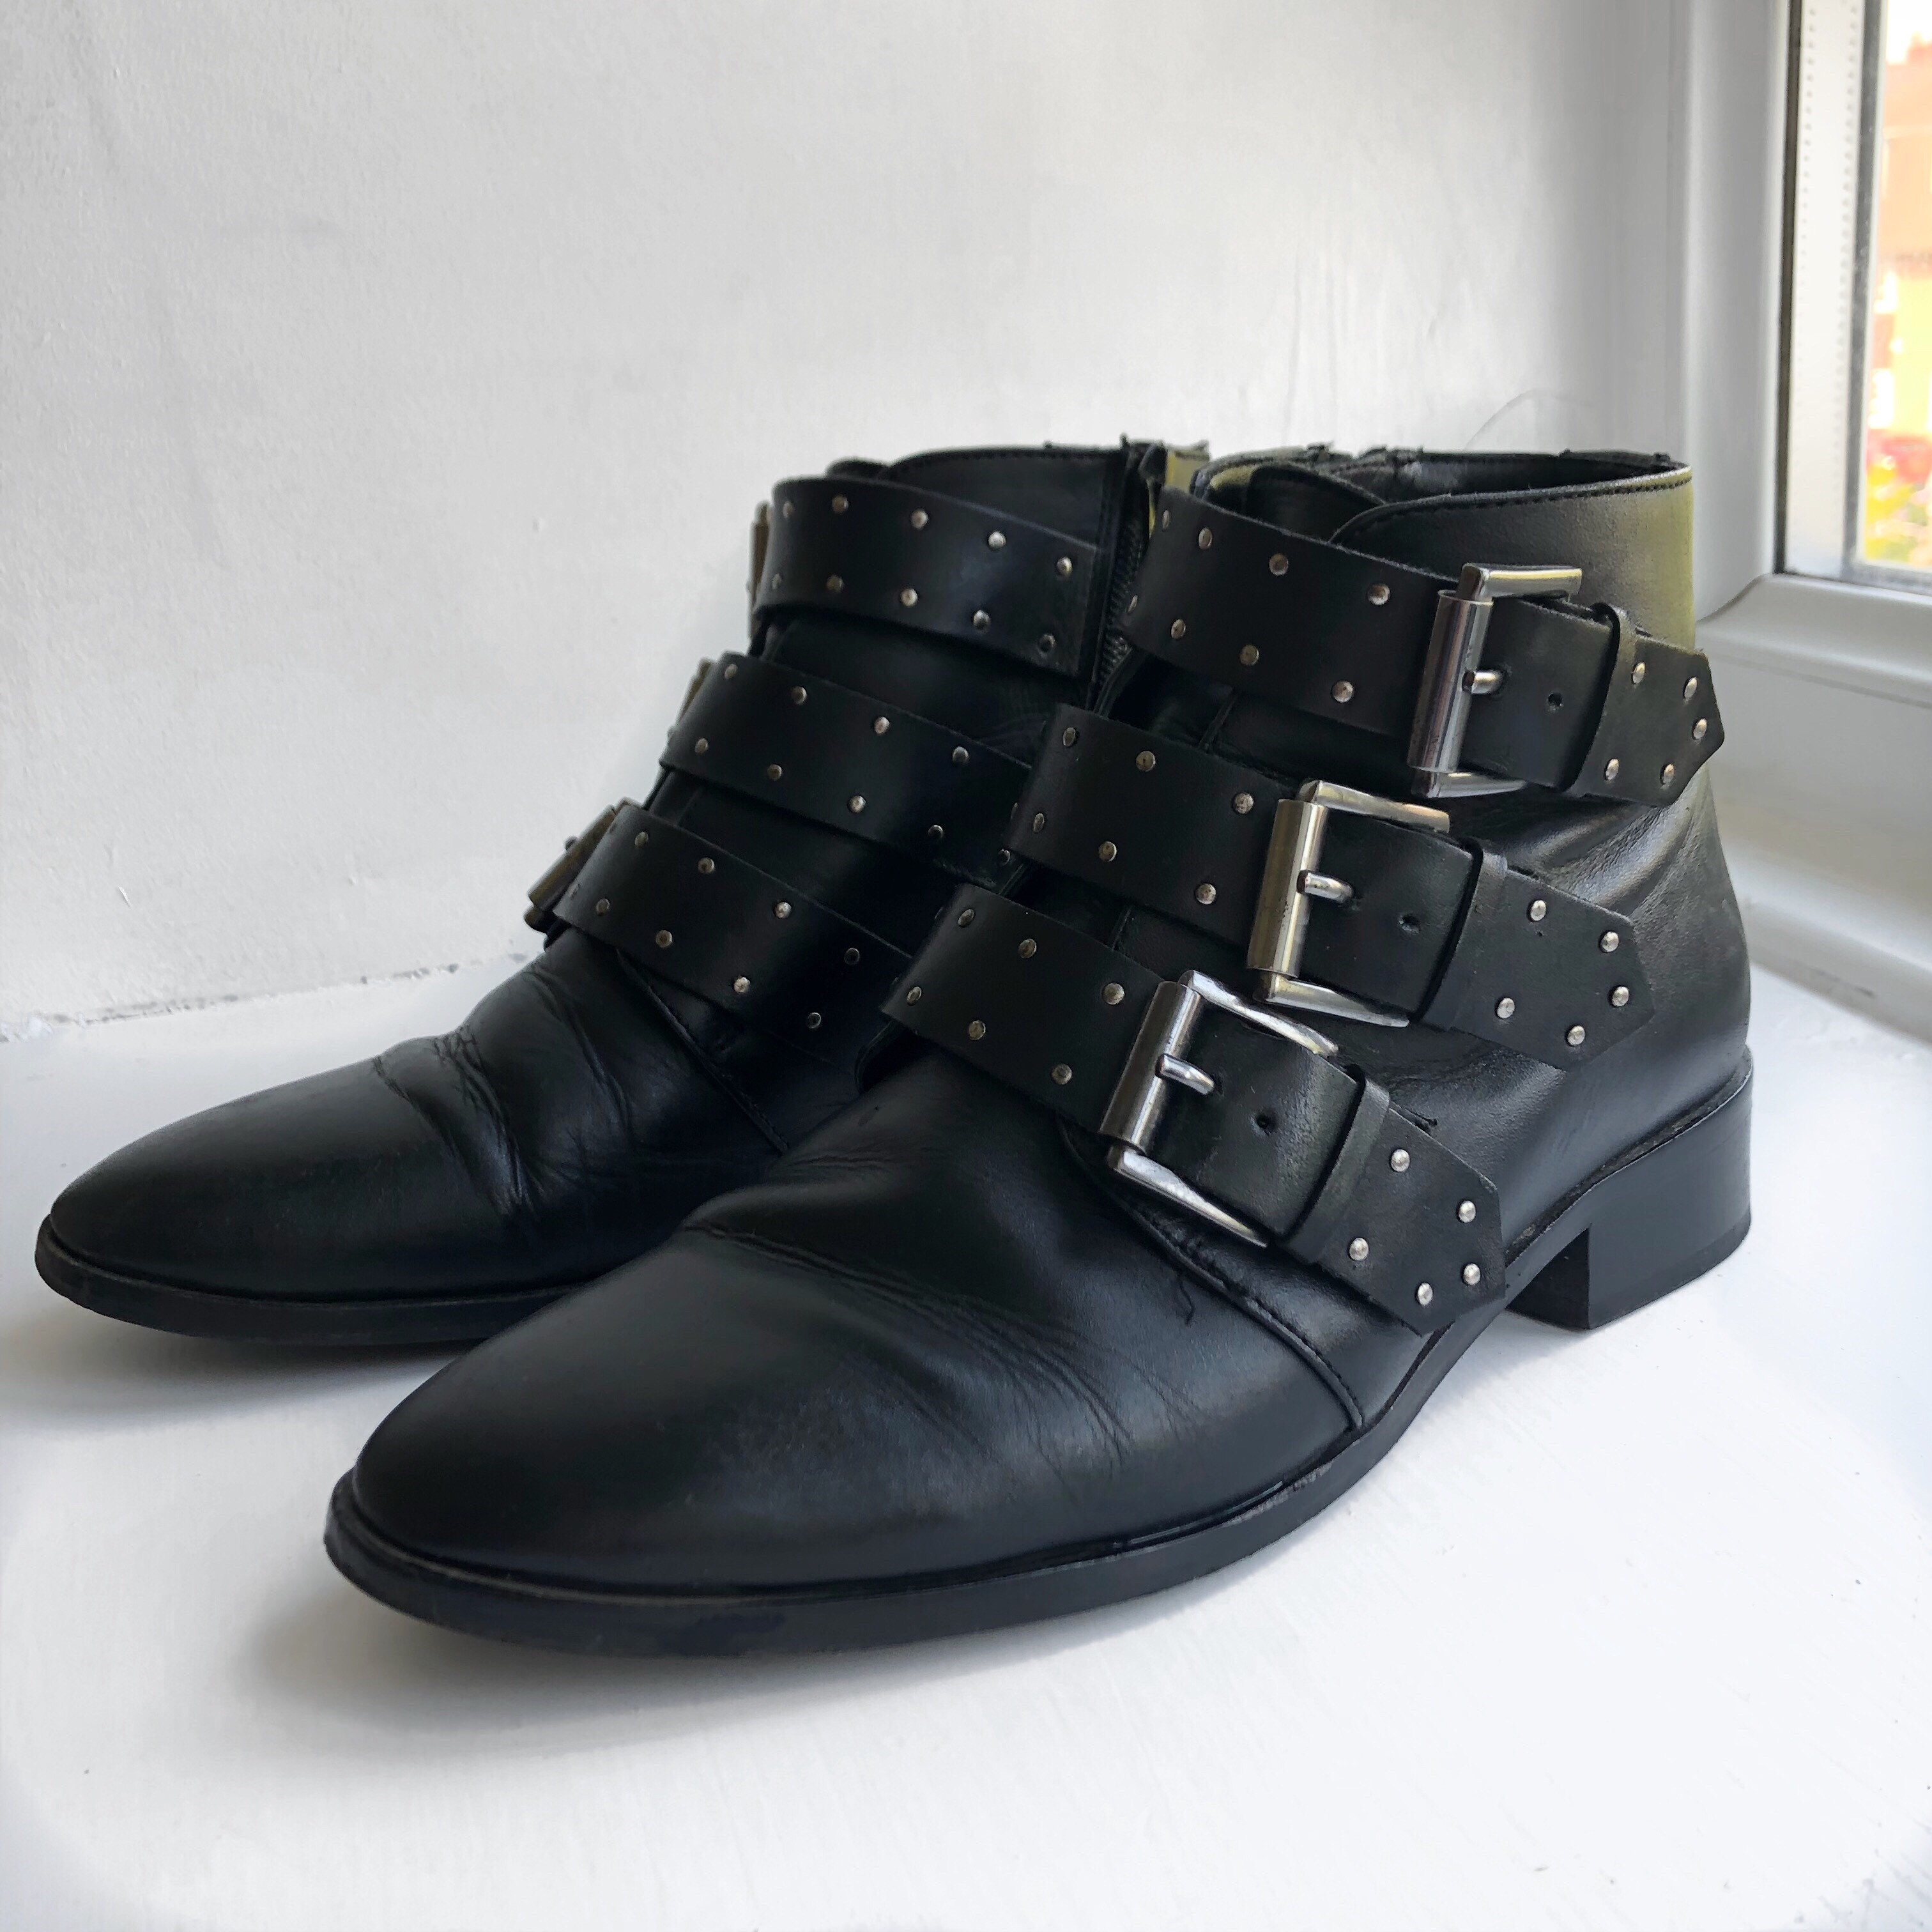 2b3877268b7 ASOS ASHLEIGH Leather Studded Ankle Boots. UK 5/EU... - Depop